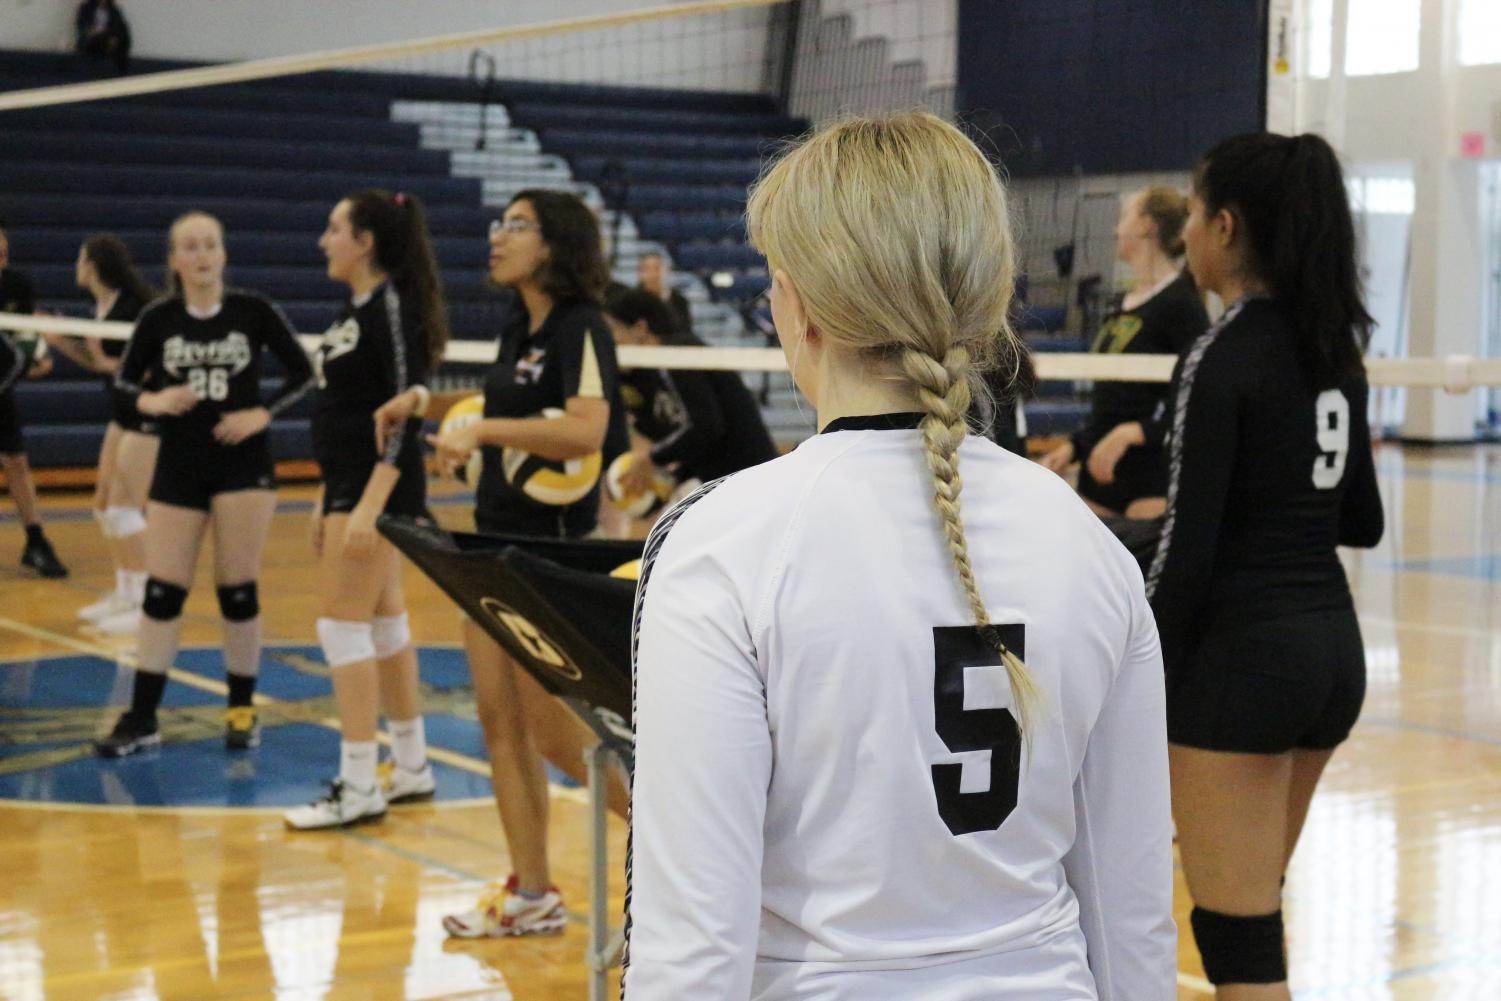 GIRLS VOLLEYBALL TEAM SAYS GOODBYE TO DEPARTING SENIORS